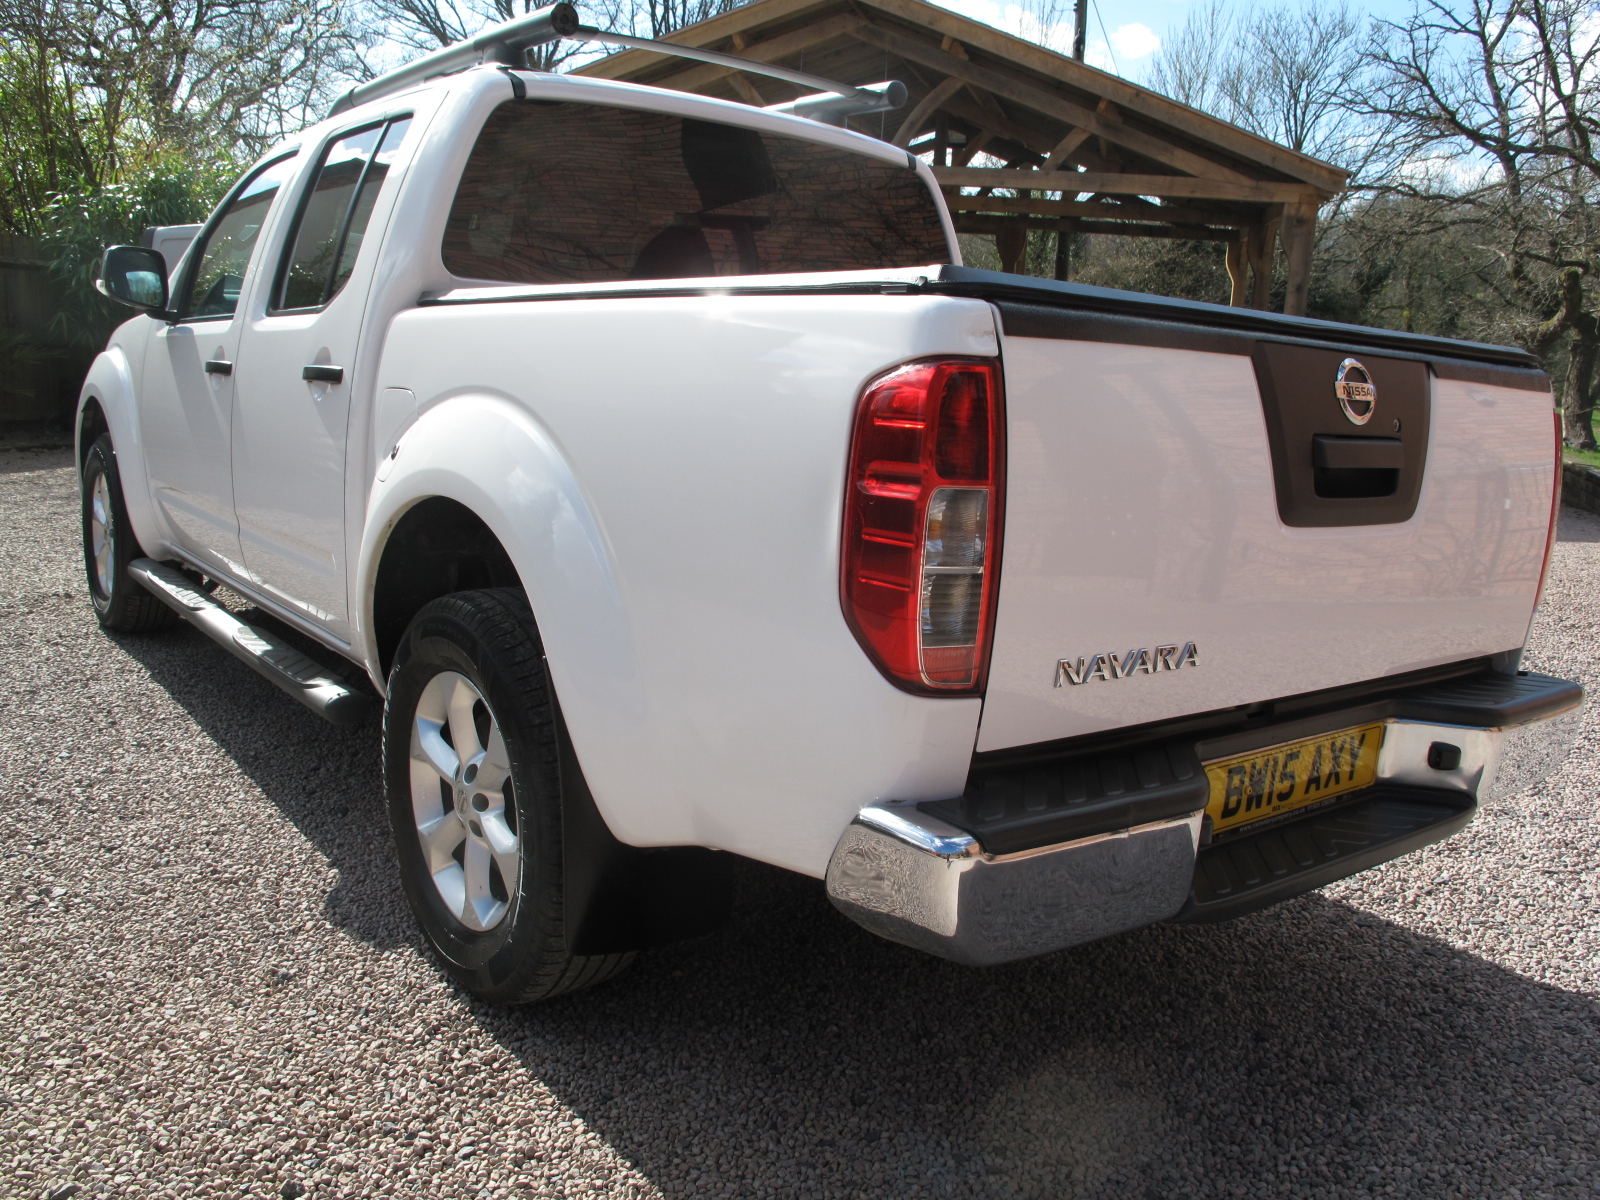 2015 15 Nissan Navara 2.5 dCi Tekna Premium Connect Double Cab Pickup 4WD VERY LOW MILES! TOP OF THE RANGE! STUNNING CONDITION! 1 OWNER NO VAT! full